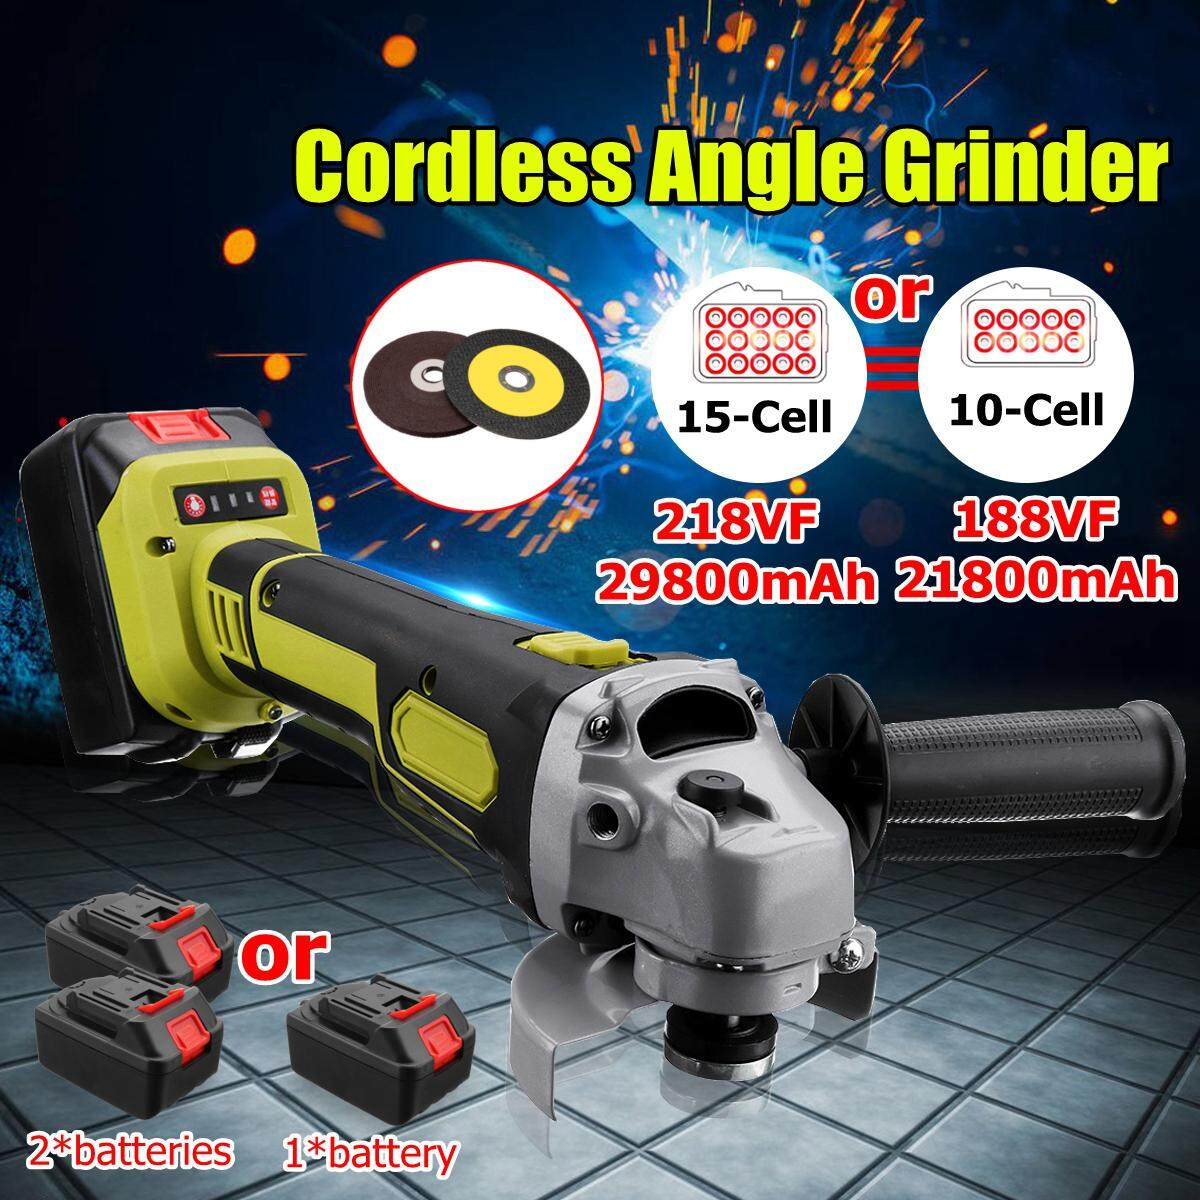 188VF/218VF 1/2 PCS Power Source 21800mah/29800mah Cordless Brushless Electric Angle Grinder 11000RPM Cutting Polishing Polisher Kit